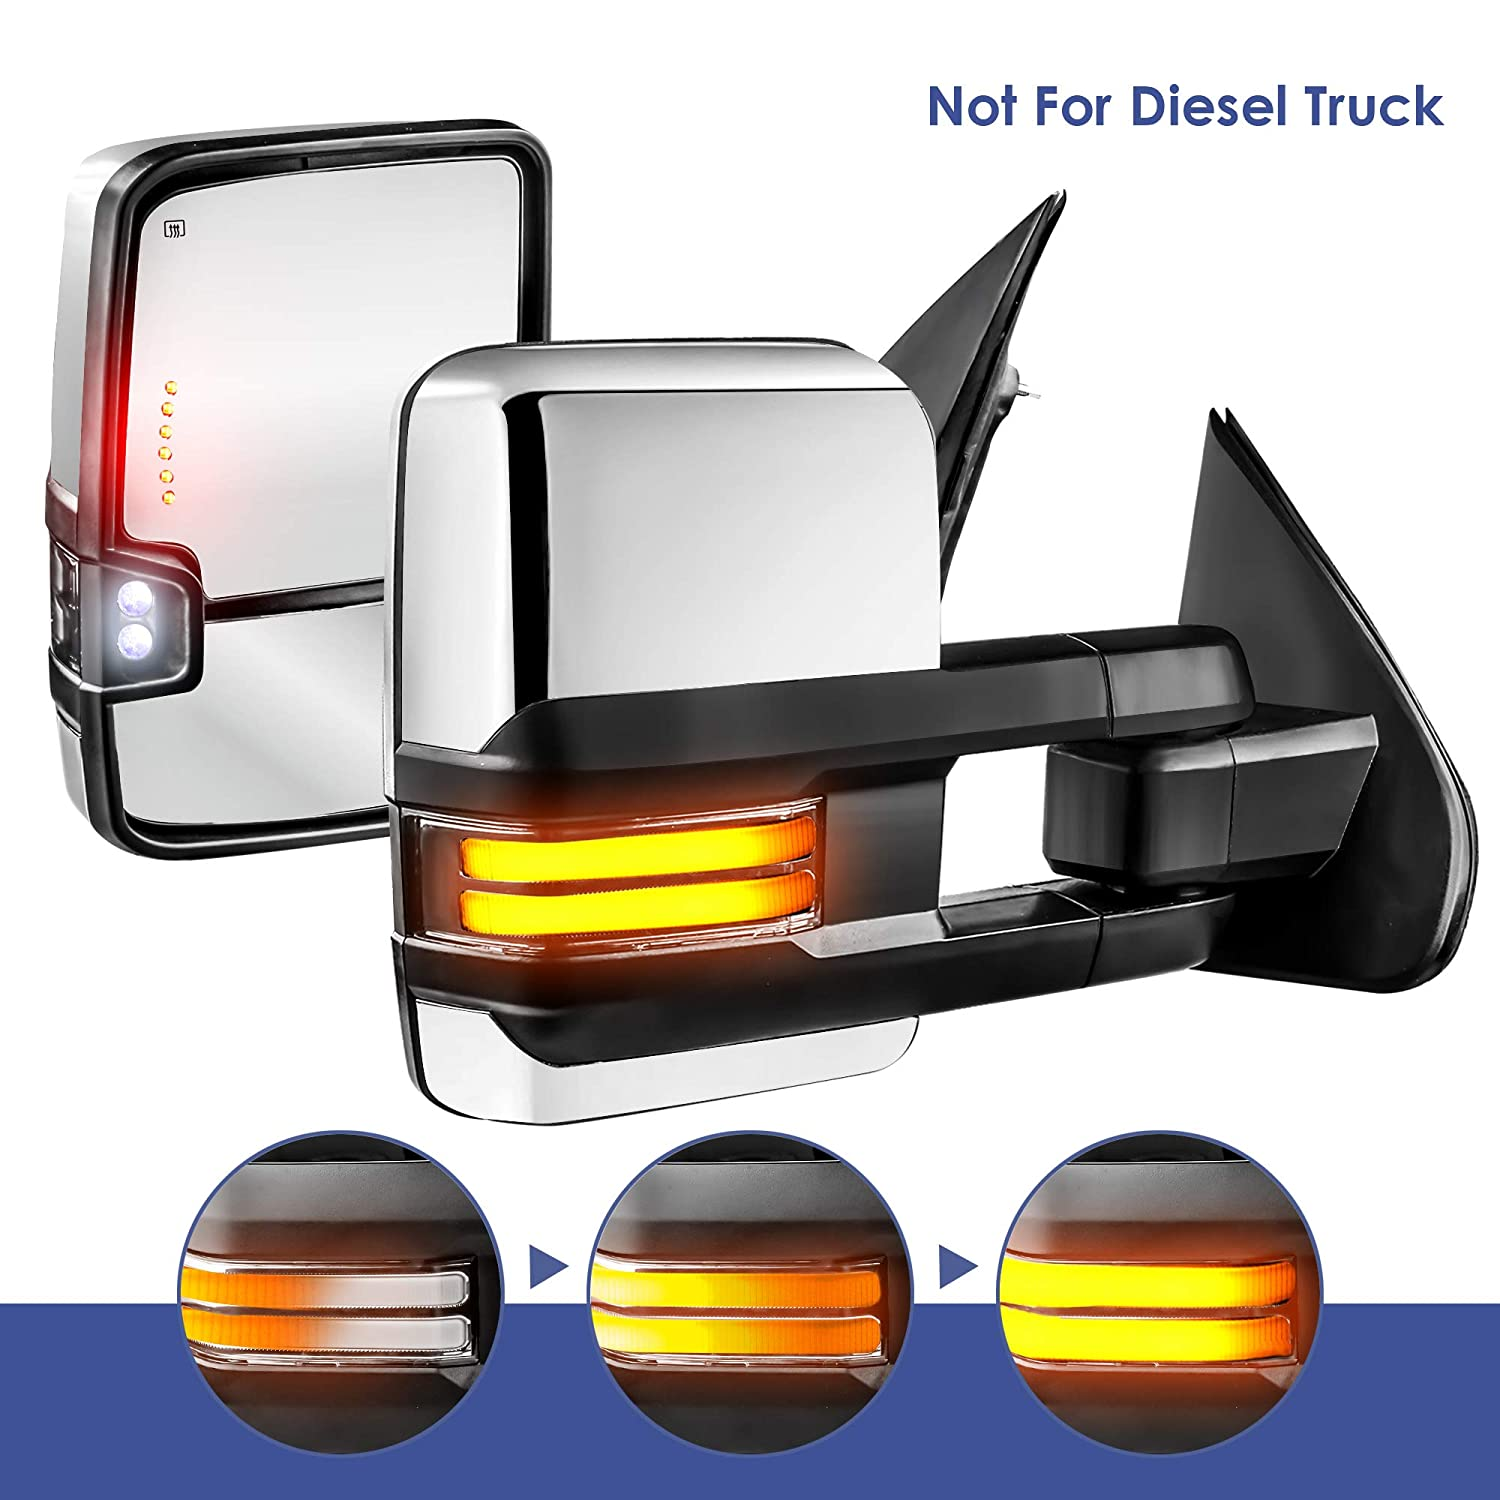 Running Light Not for Diesel Truck Set of 2 MOSTPLUS New Power Heated Towing Mirrors for Chevy Silverado GMC Serria 2014-2018 w//Sequential Turn light Clearance Lamp